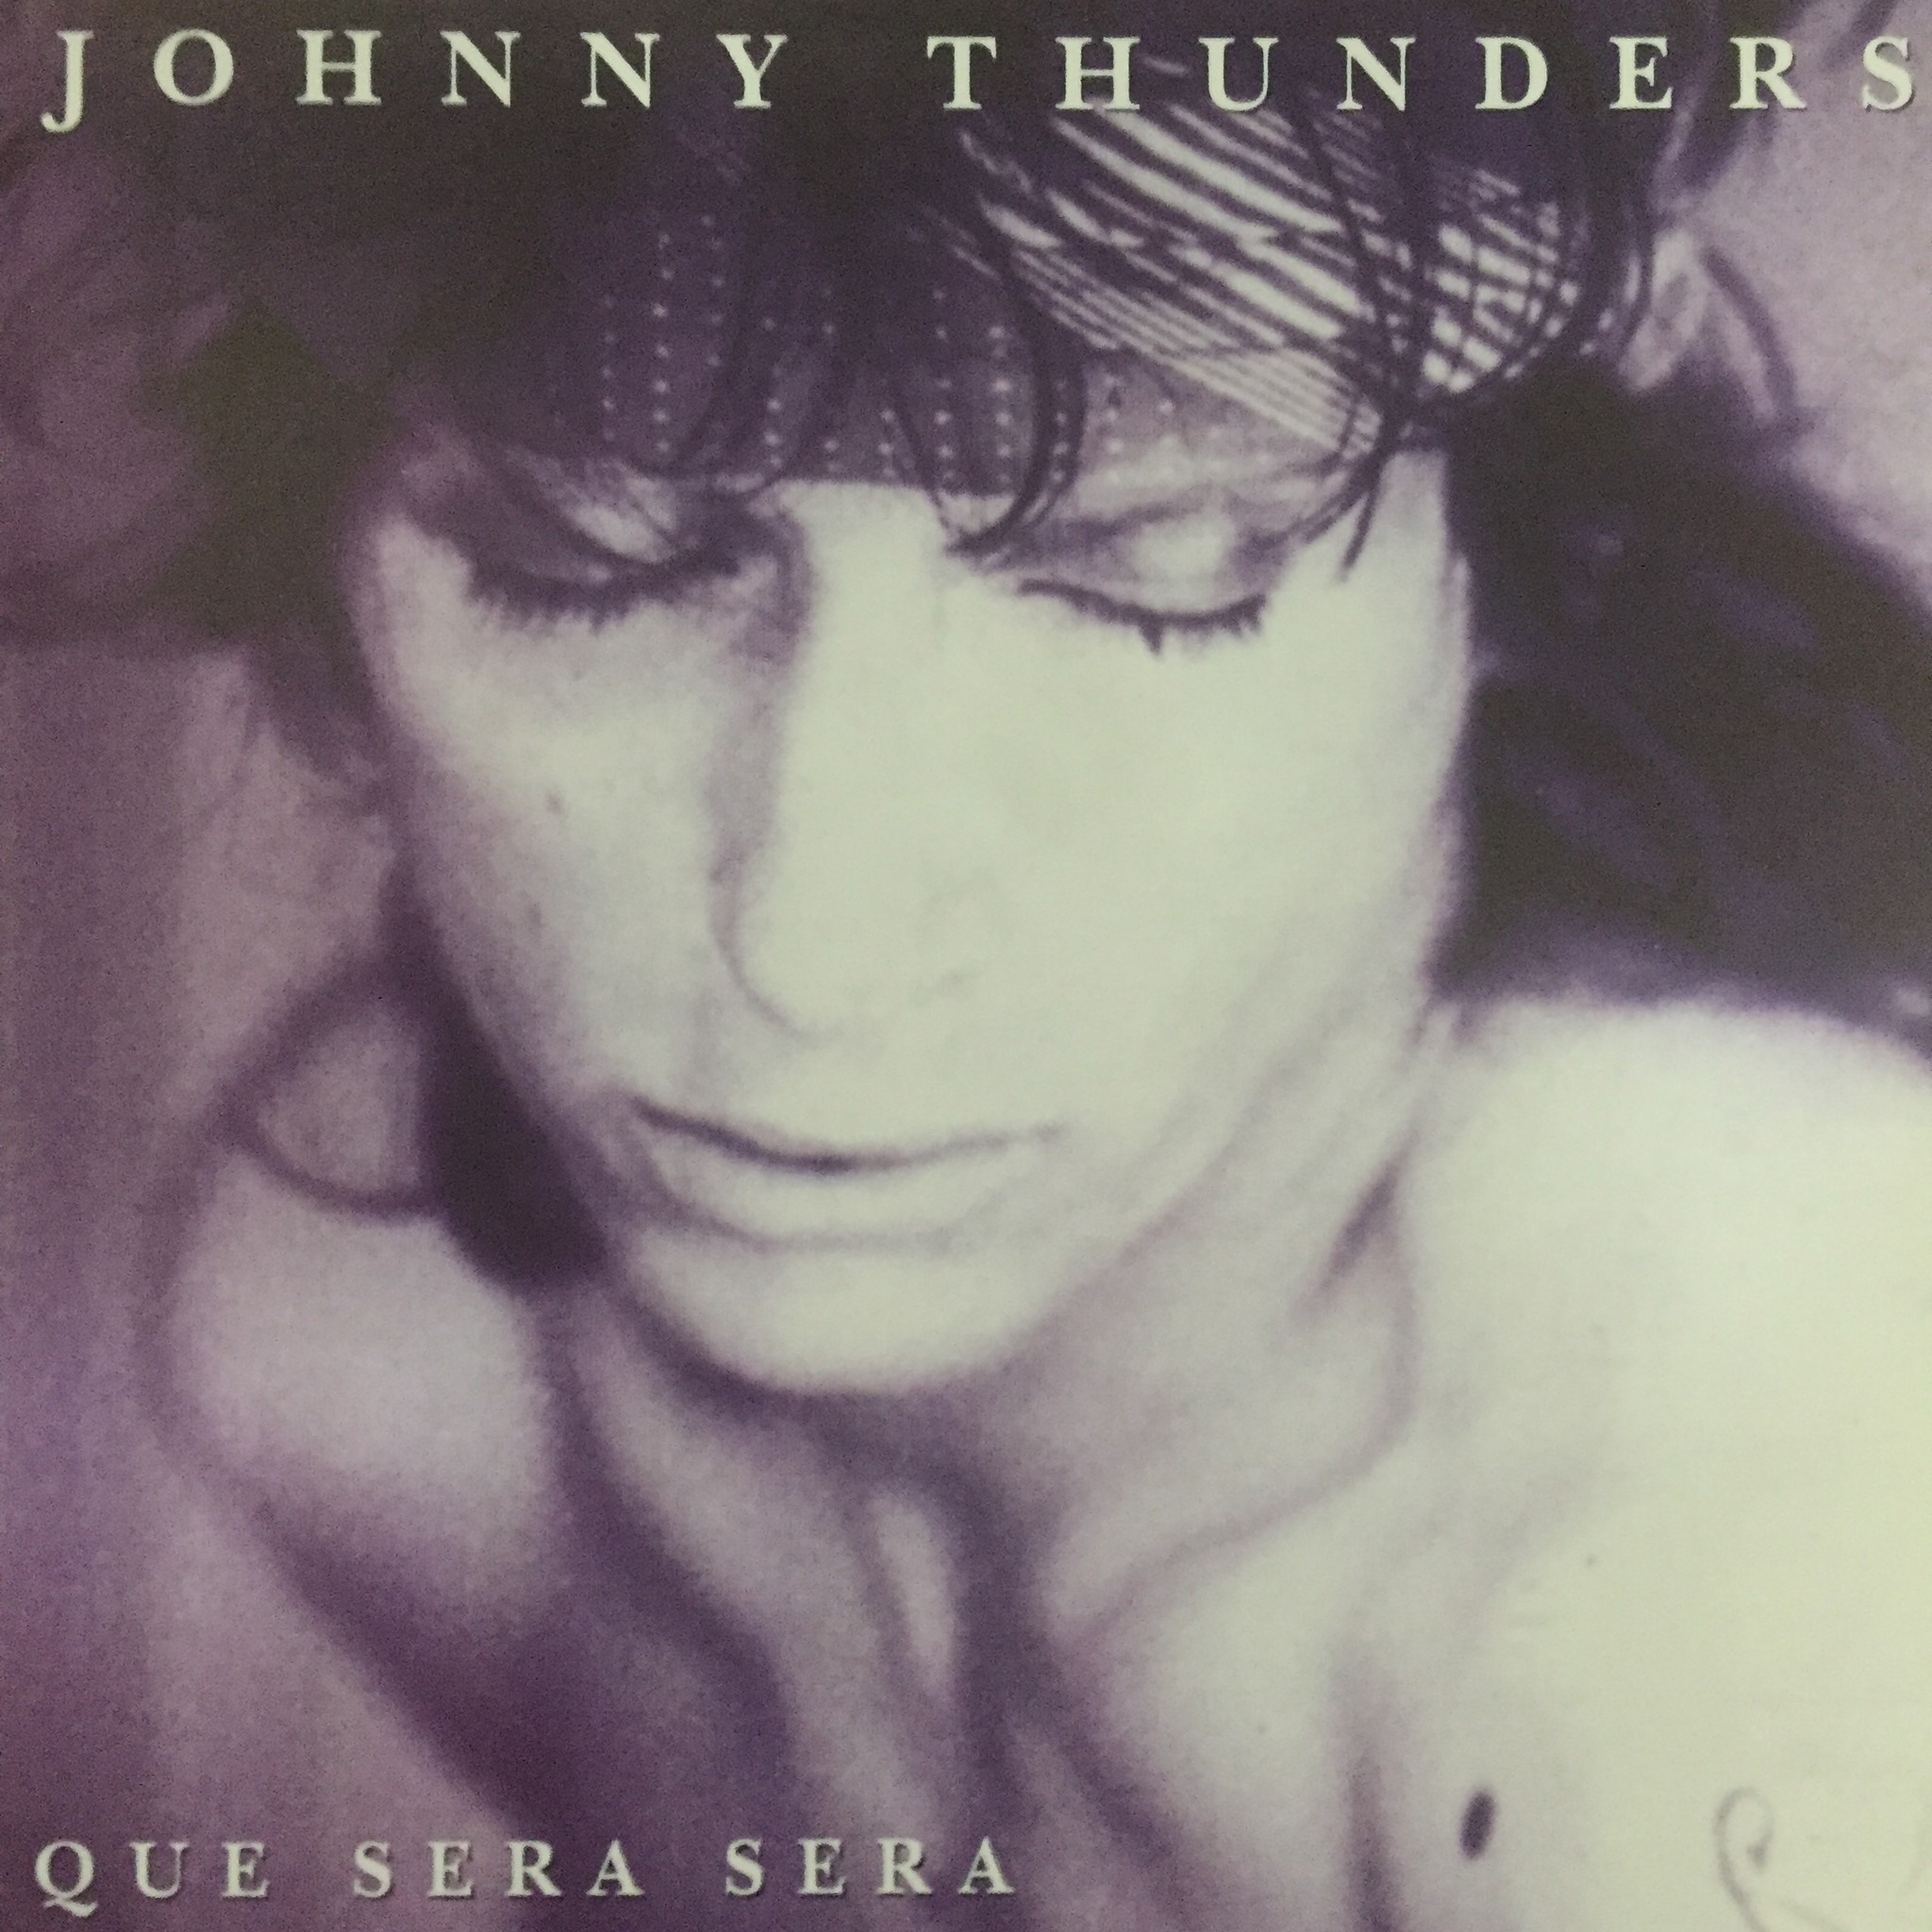 JOHNNY THUNDERS 「M.I.A」